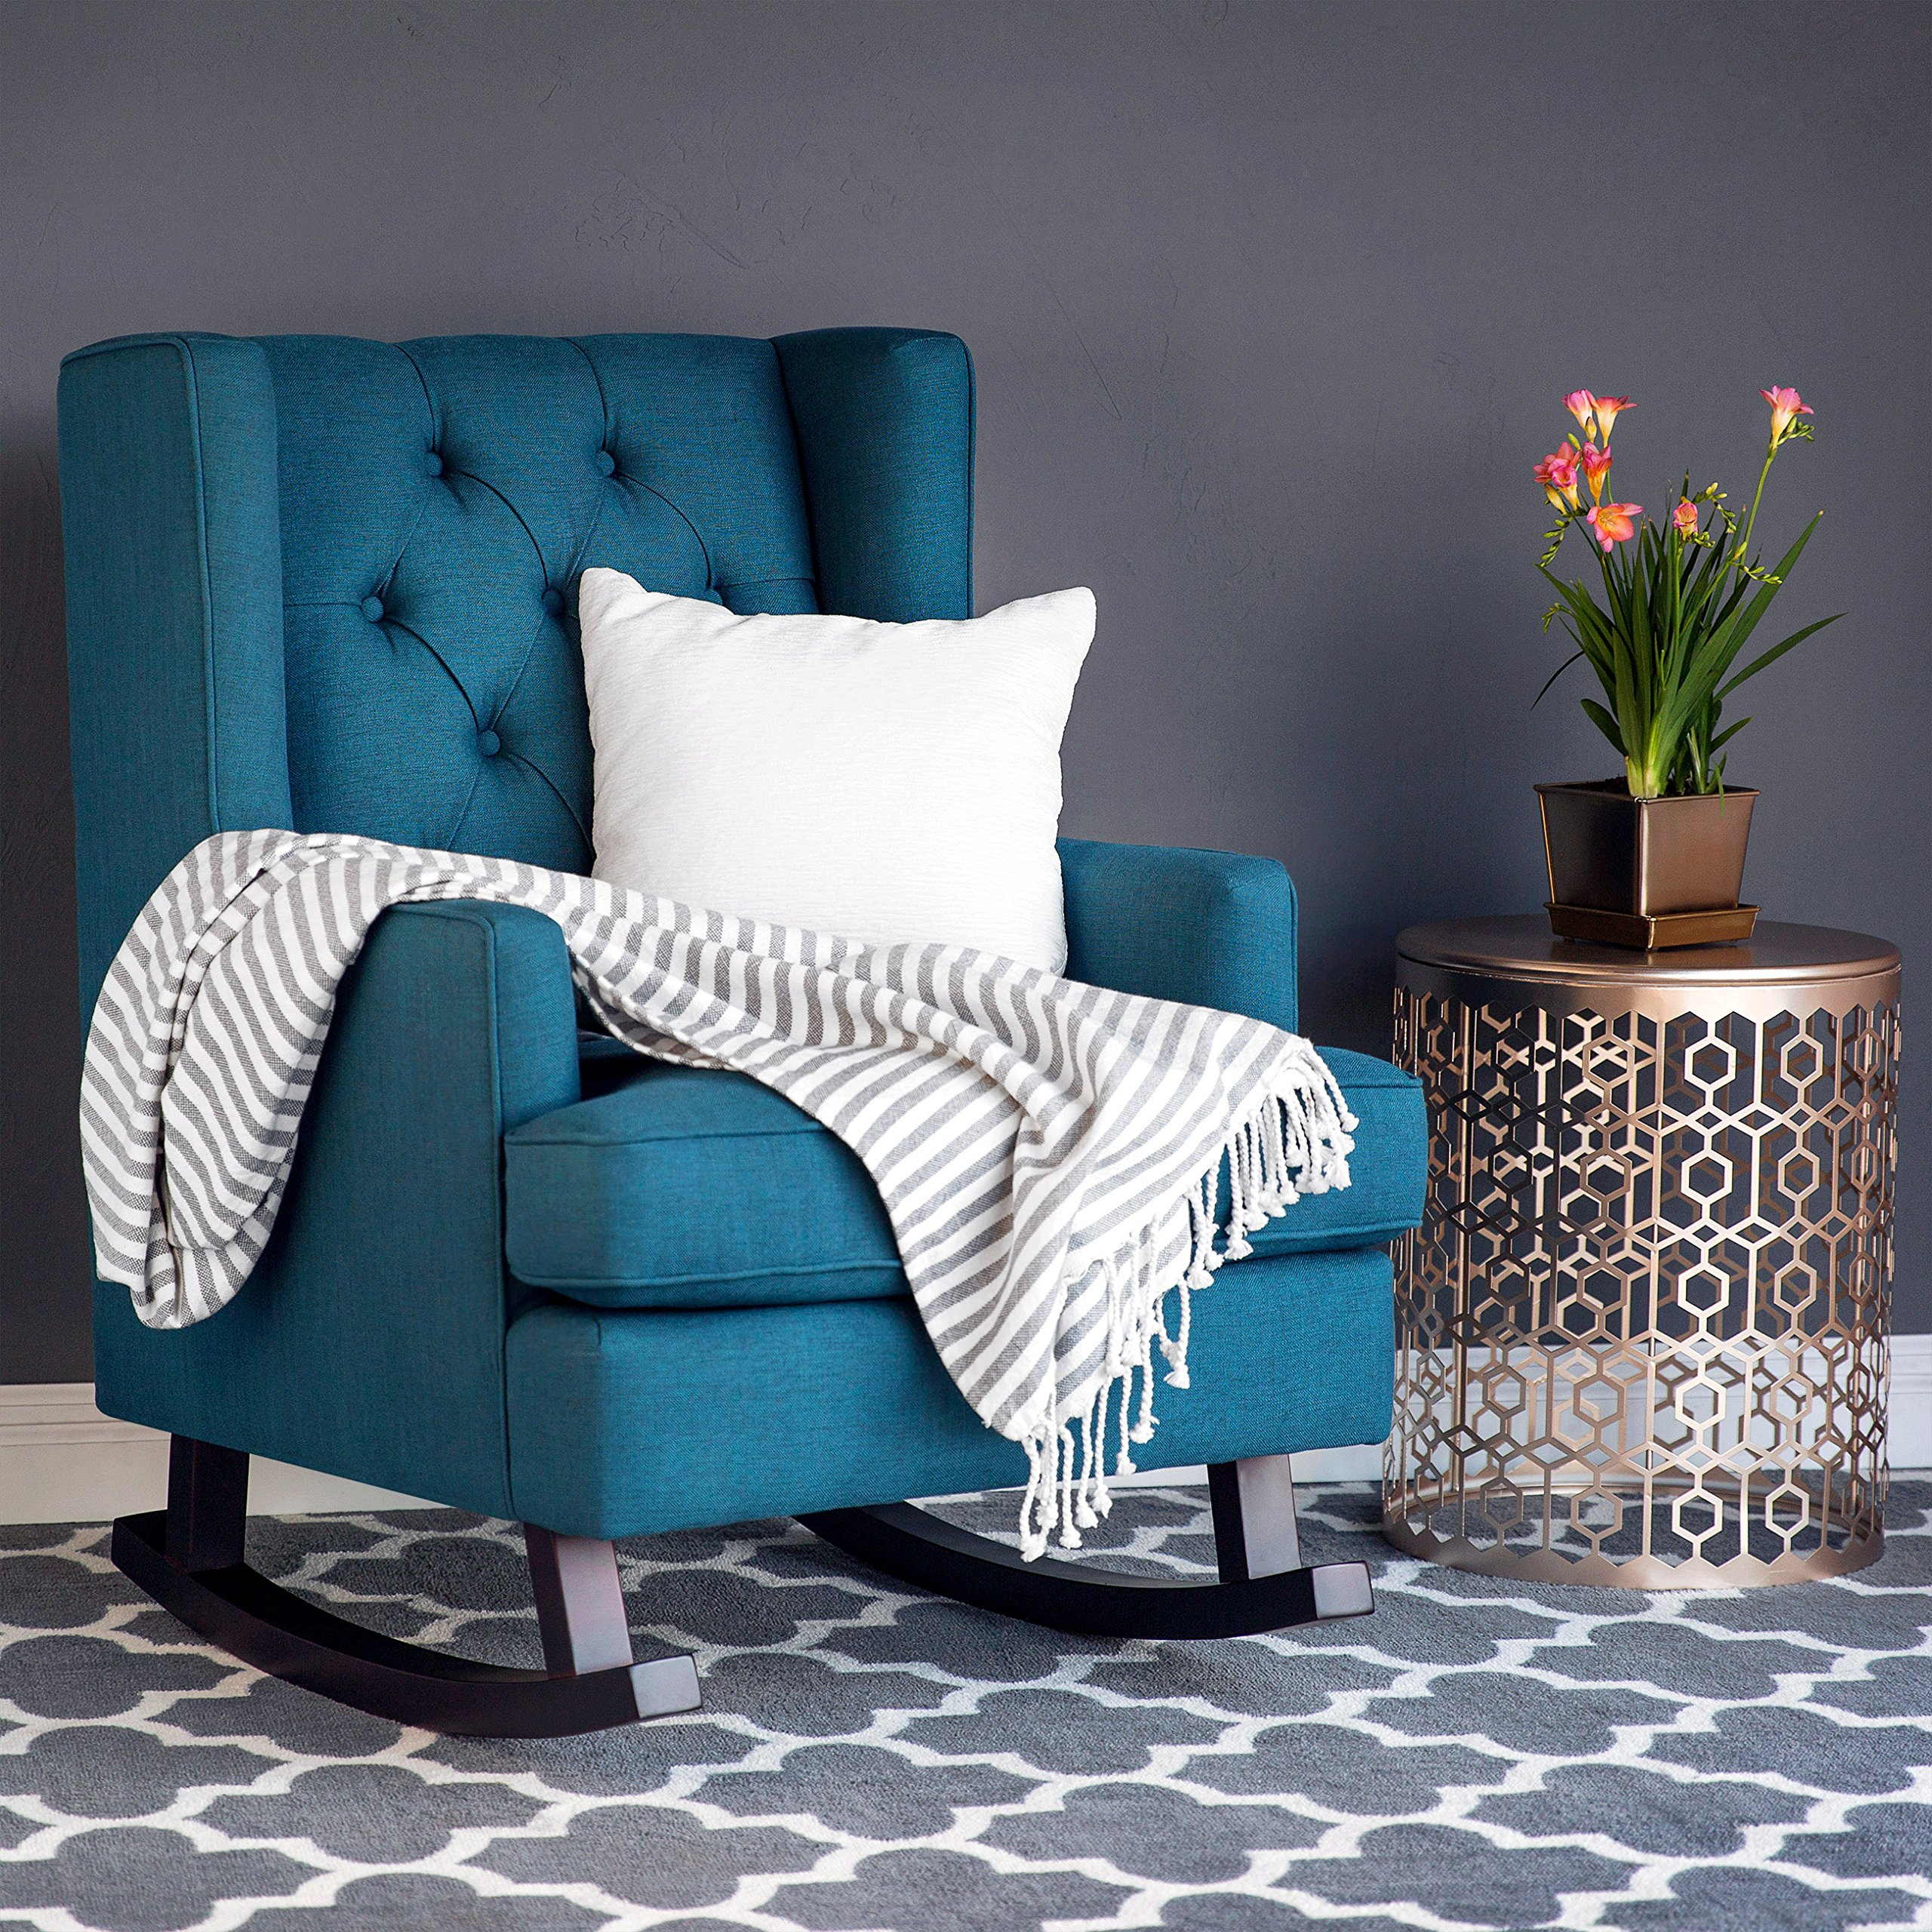 Best Choice Products Tufted Upholstered Wingback Rocking ...